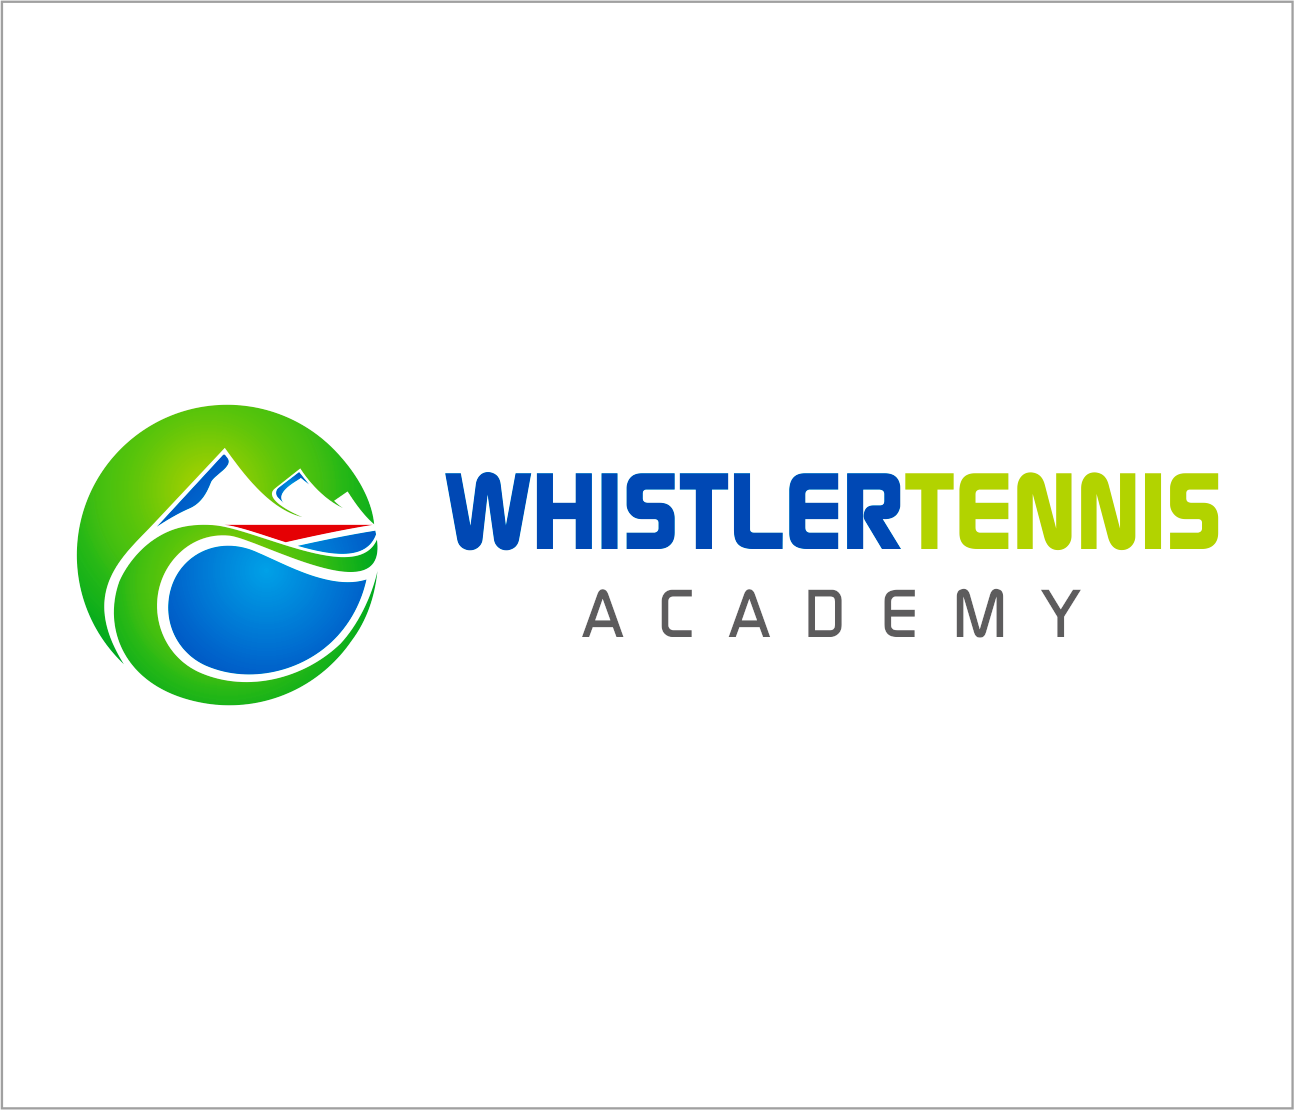 Logo Design by Armada Jamaluddin - Entry No. 232 in the Logo Design Contest Imaginative Logo Design for Whistler Tennis Academy.